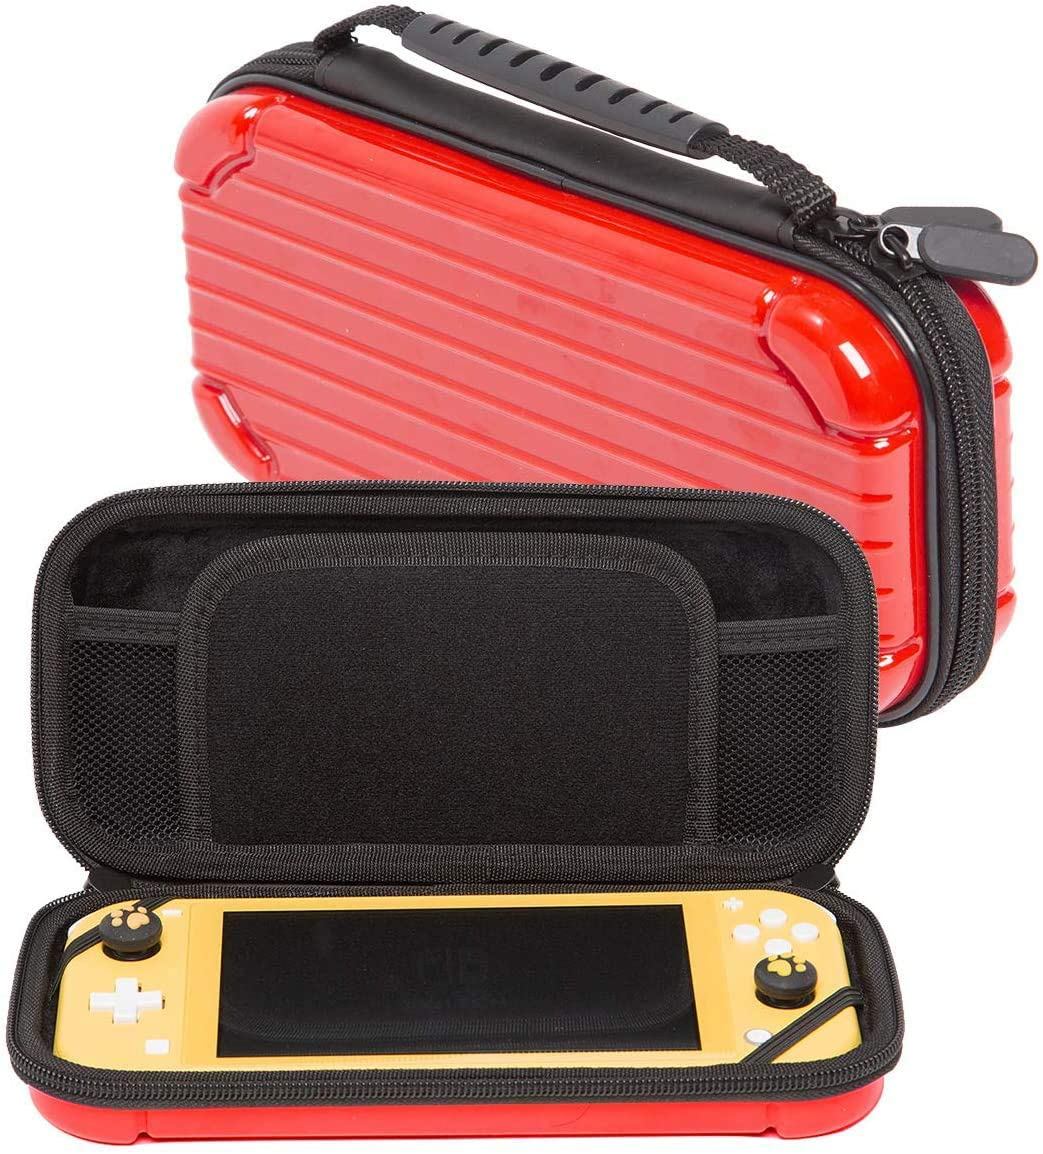 Nintendo Switch Travel Case, Portable Hard Shell Travel Carrying Bag, Switch Lite Waterproof Case Cover with Storage for Switch Lite Console & Accessories & Game Cards-Red